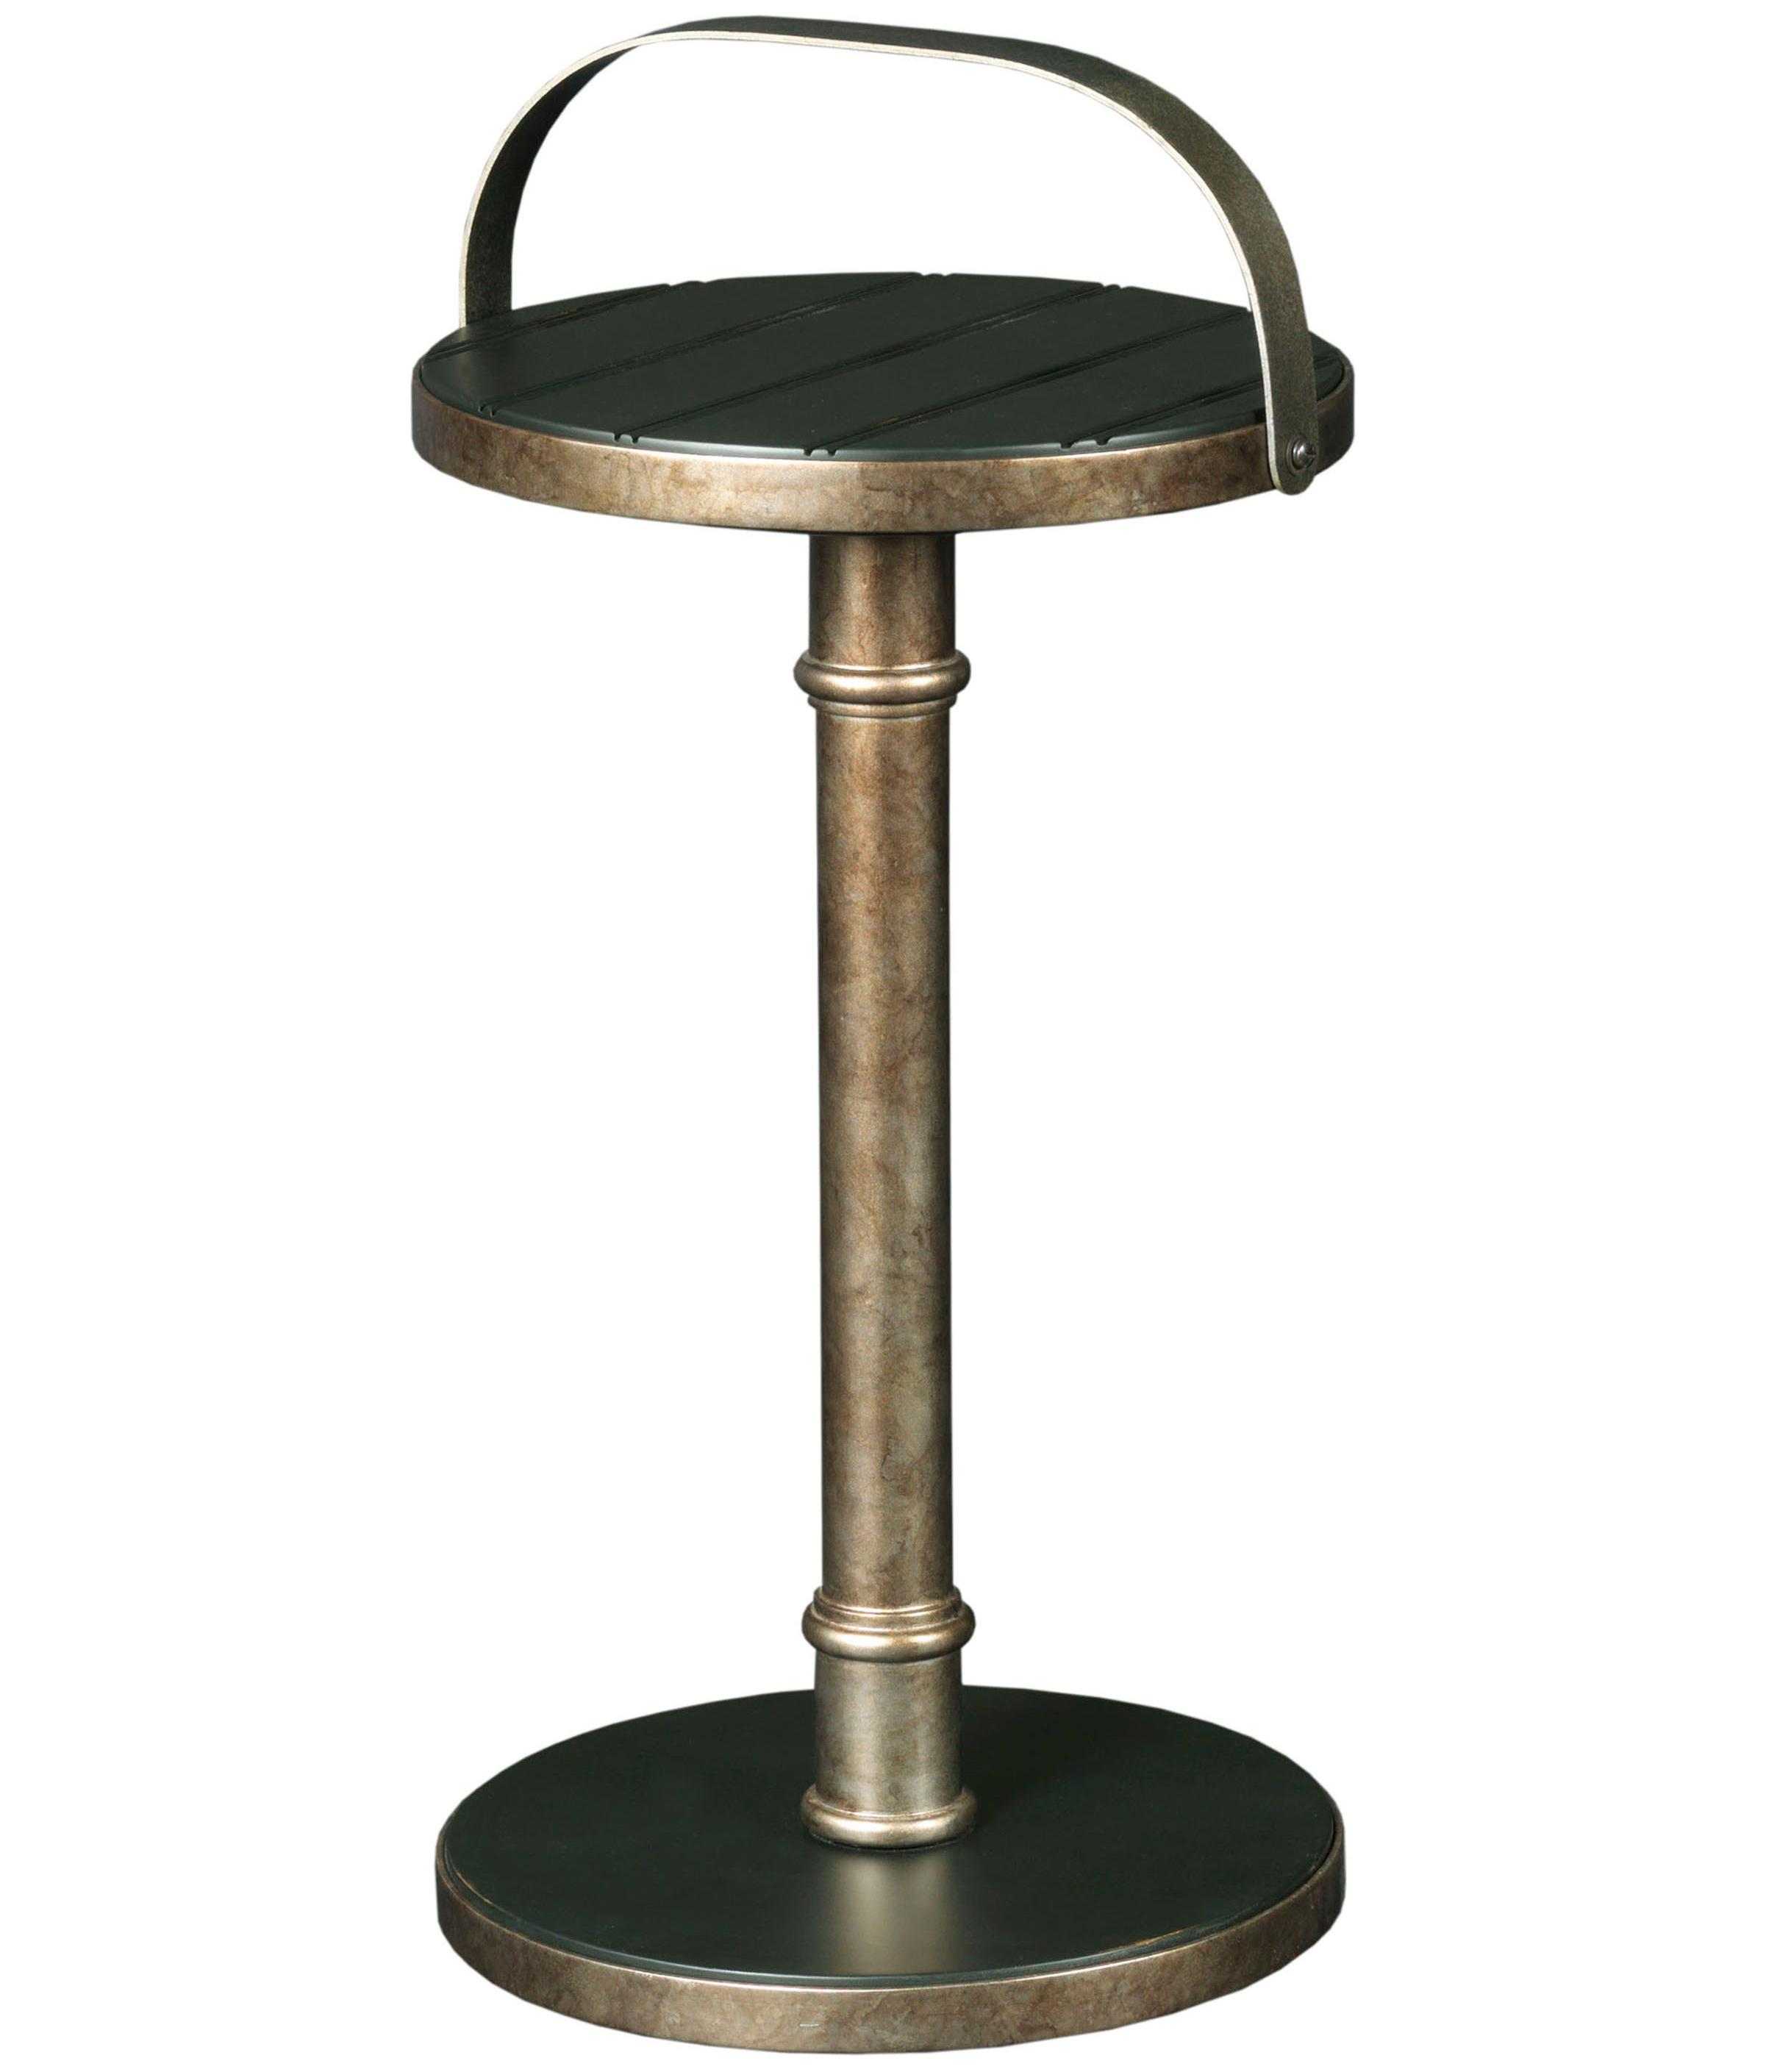 Broyhill Furniture New Vintage Pail Handle Accent Table - Item Number: 4809-007